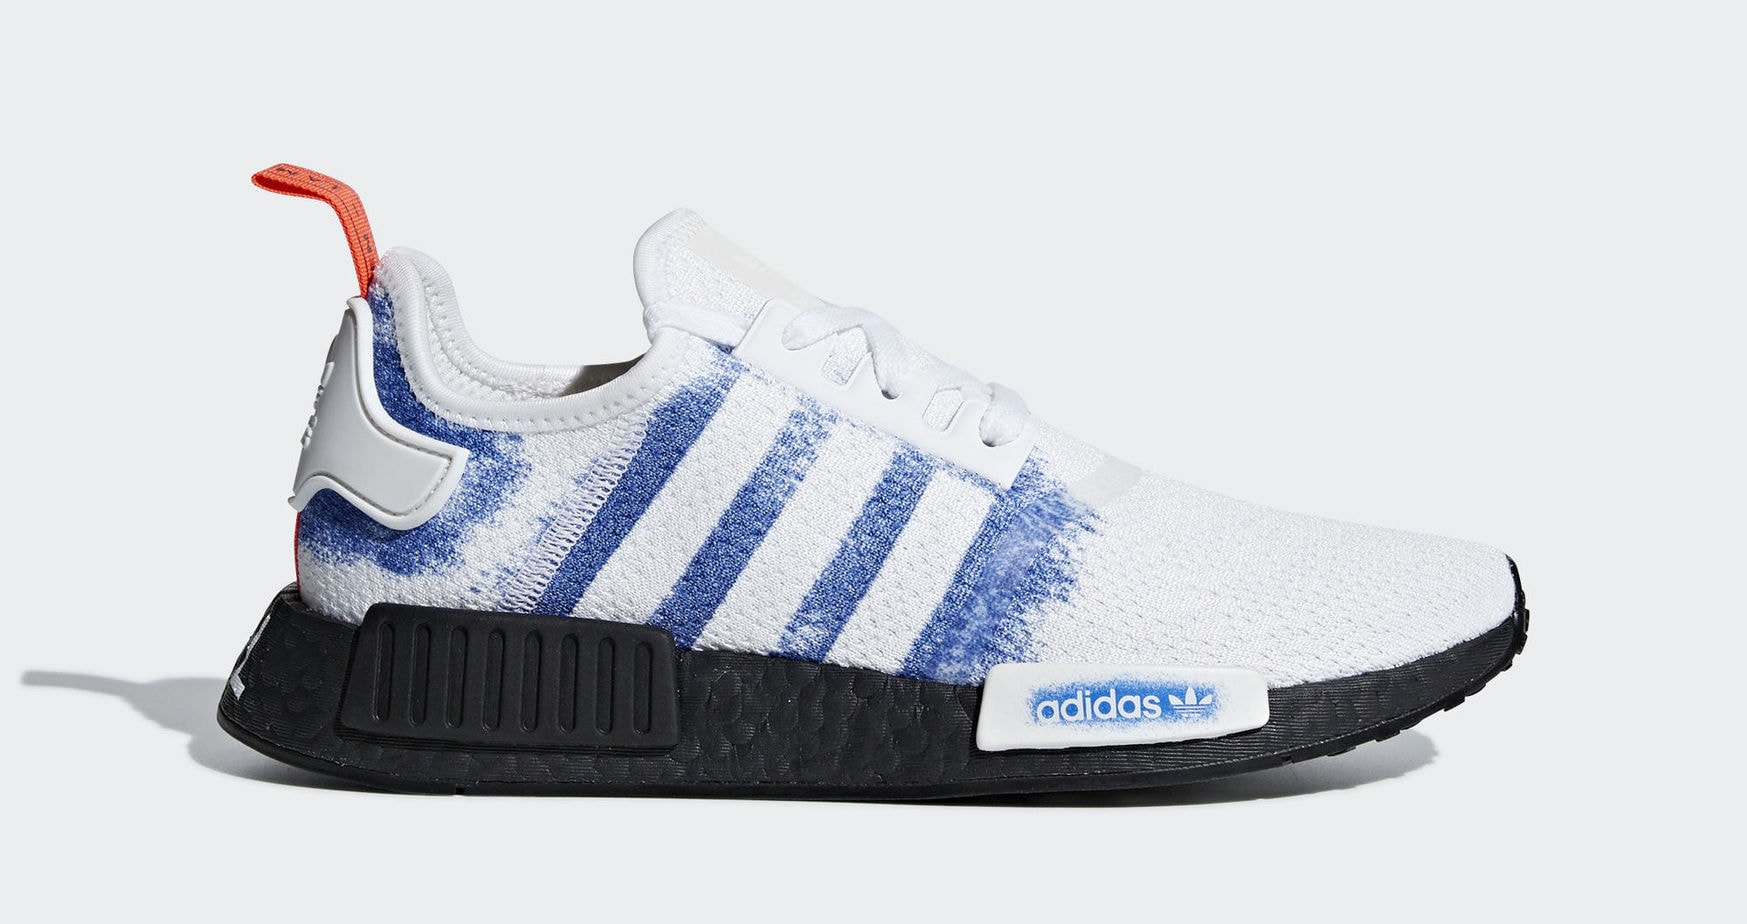 44a9d866c30ed ... adidas nmd r1 printed atl ftwr white bold blue core black october 13  2018